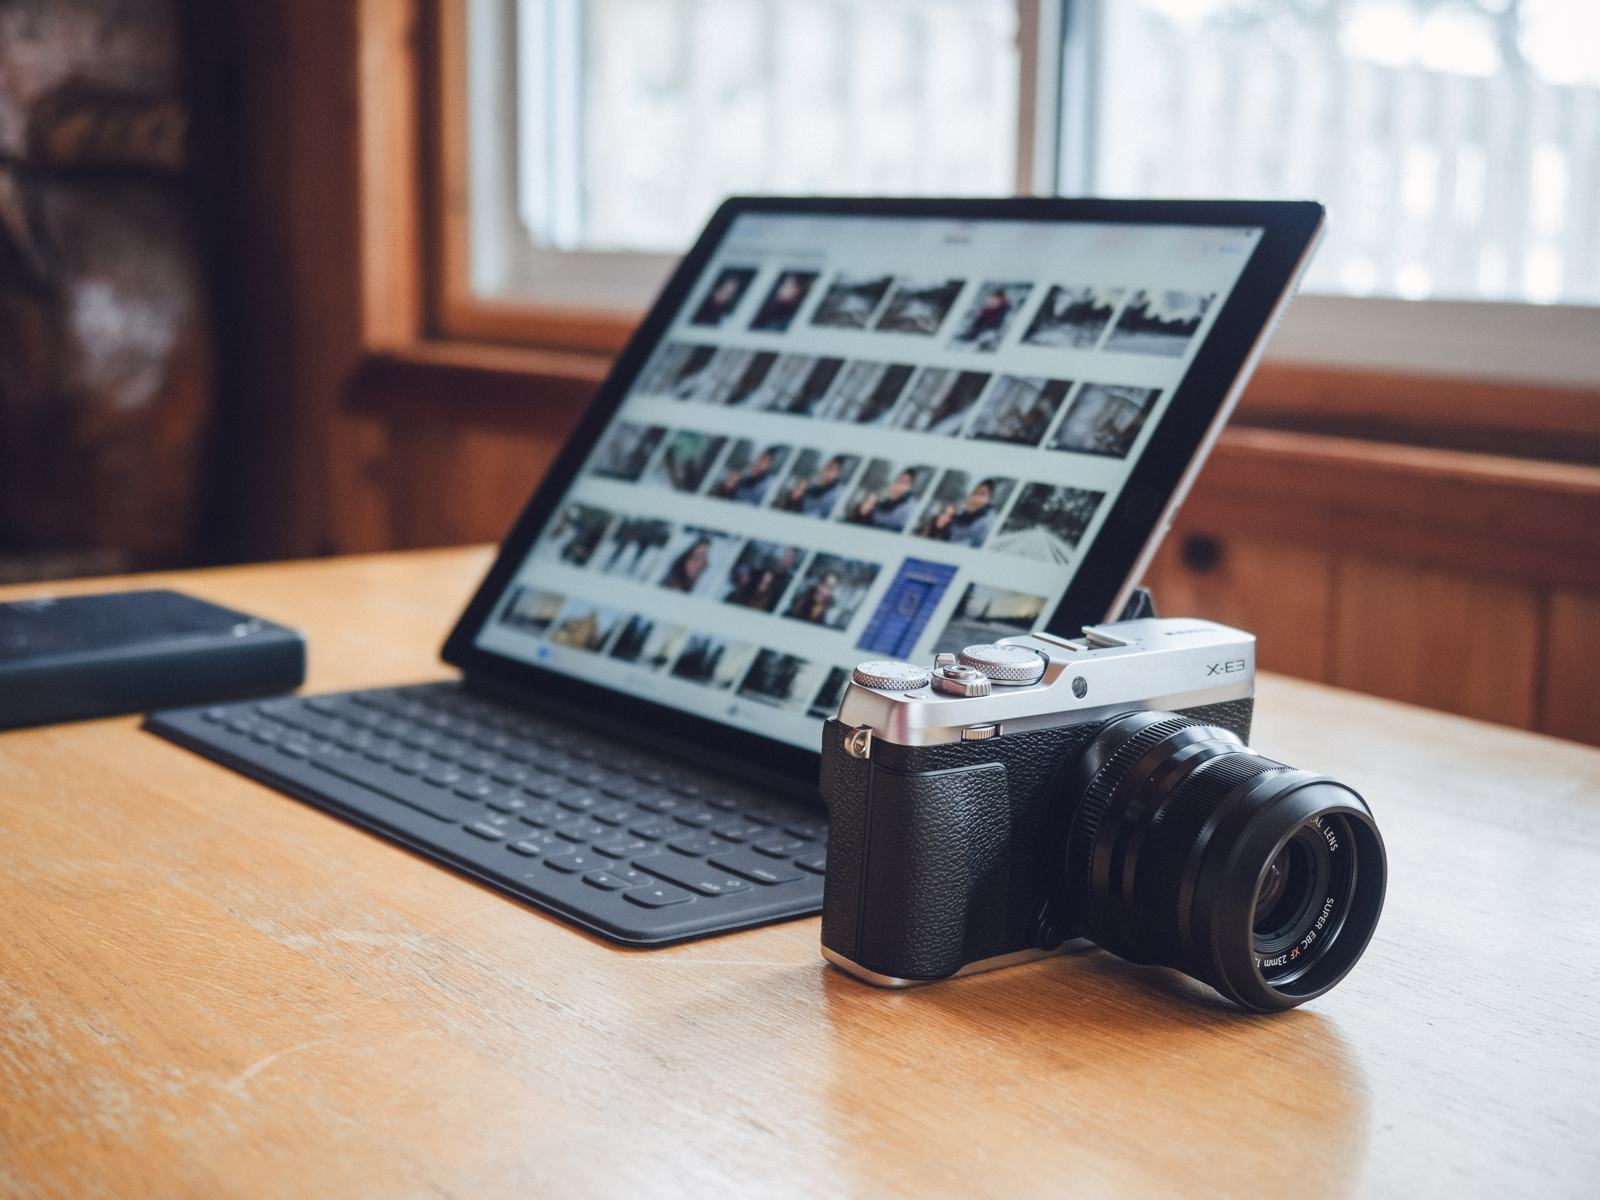 Using an iPad for photography workflows